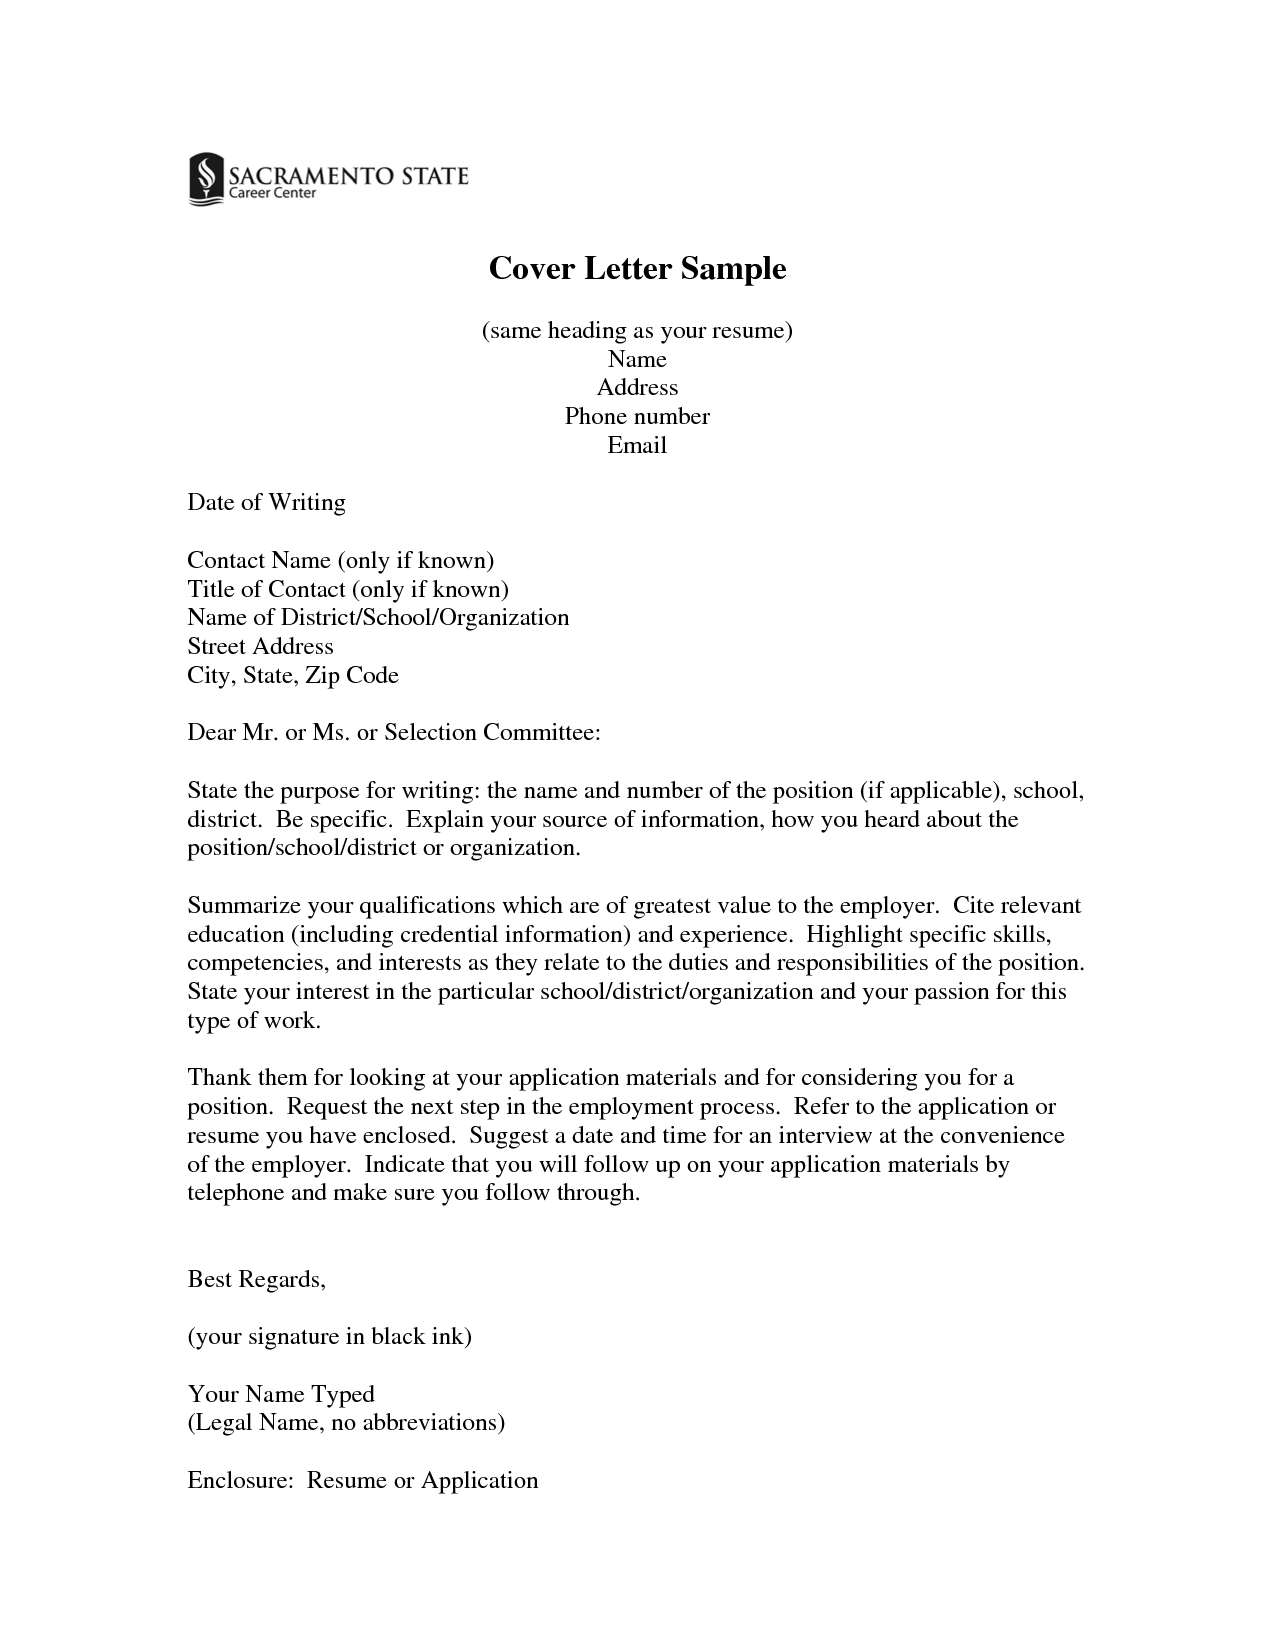 Same Cover Letters For Resume Cover Letter Sample Same Heading